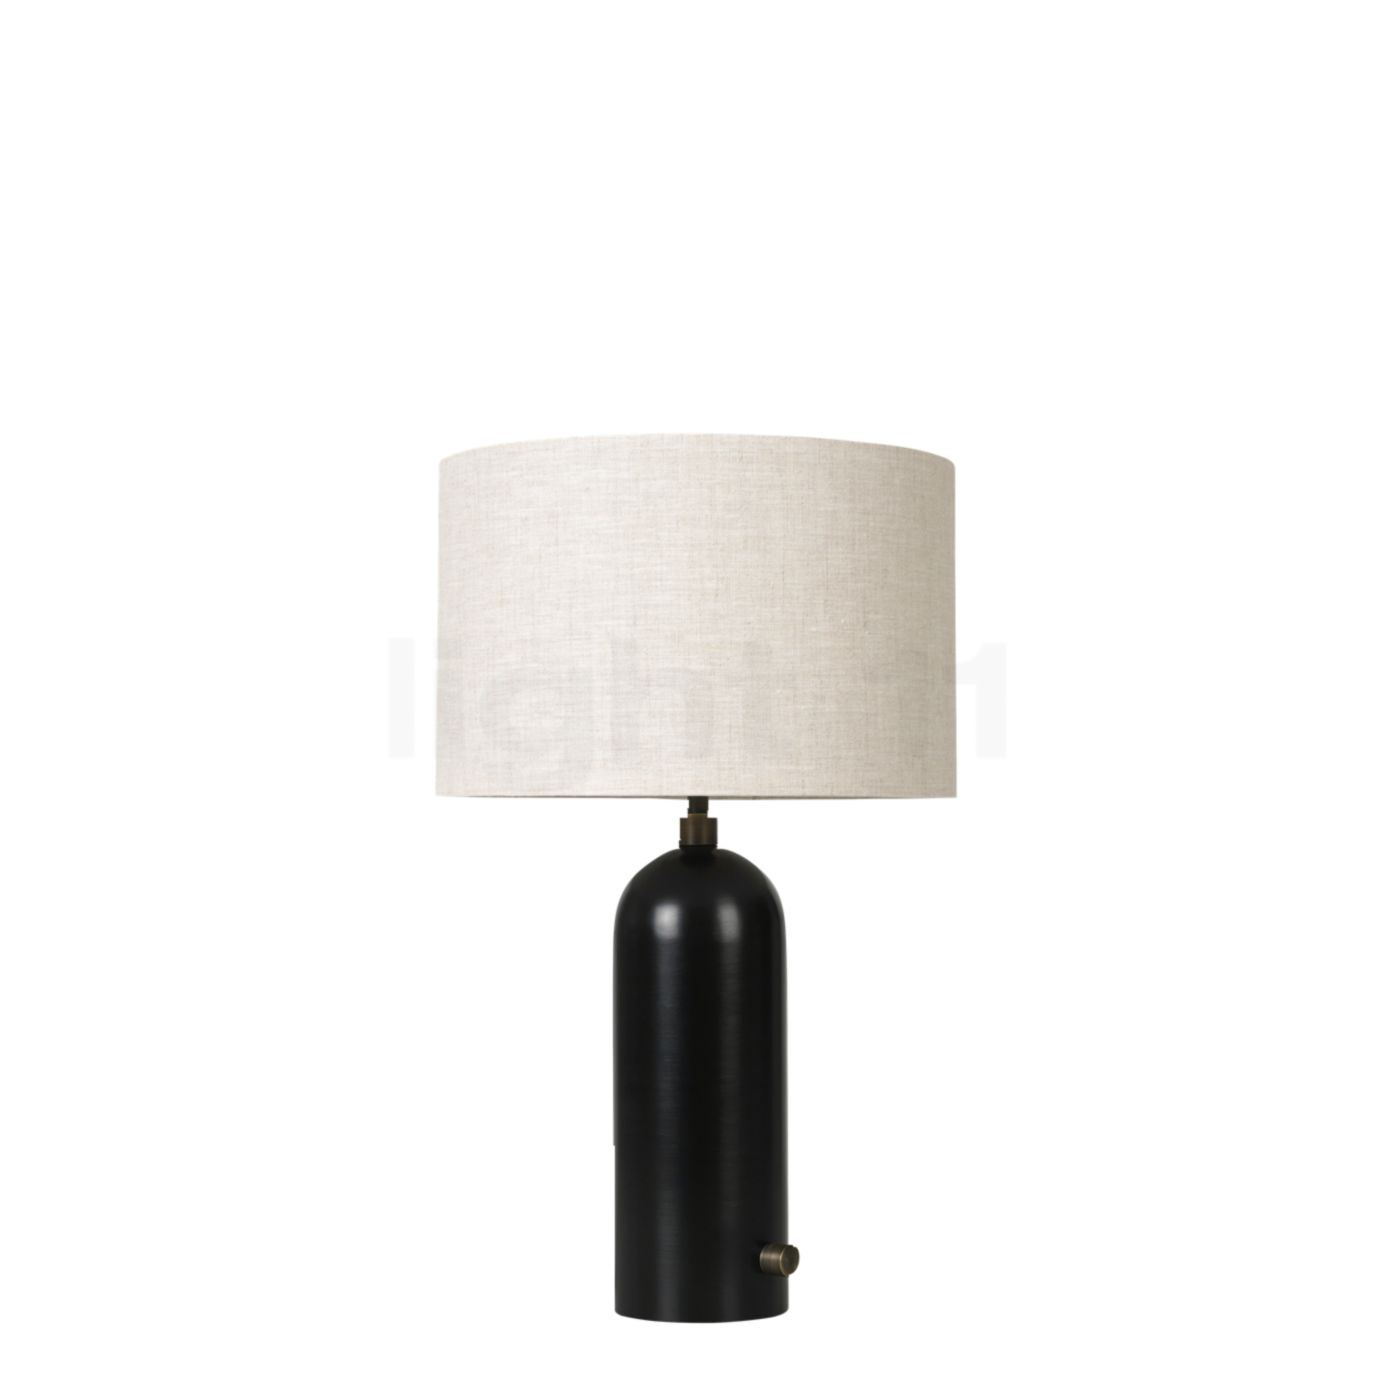 Buy Gubi Gravity Table Lamp Small At Light11.eu